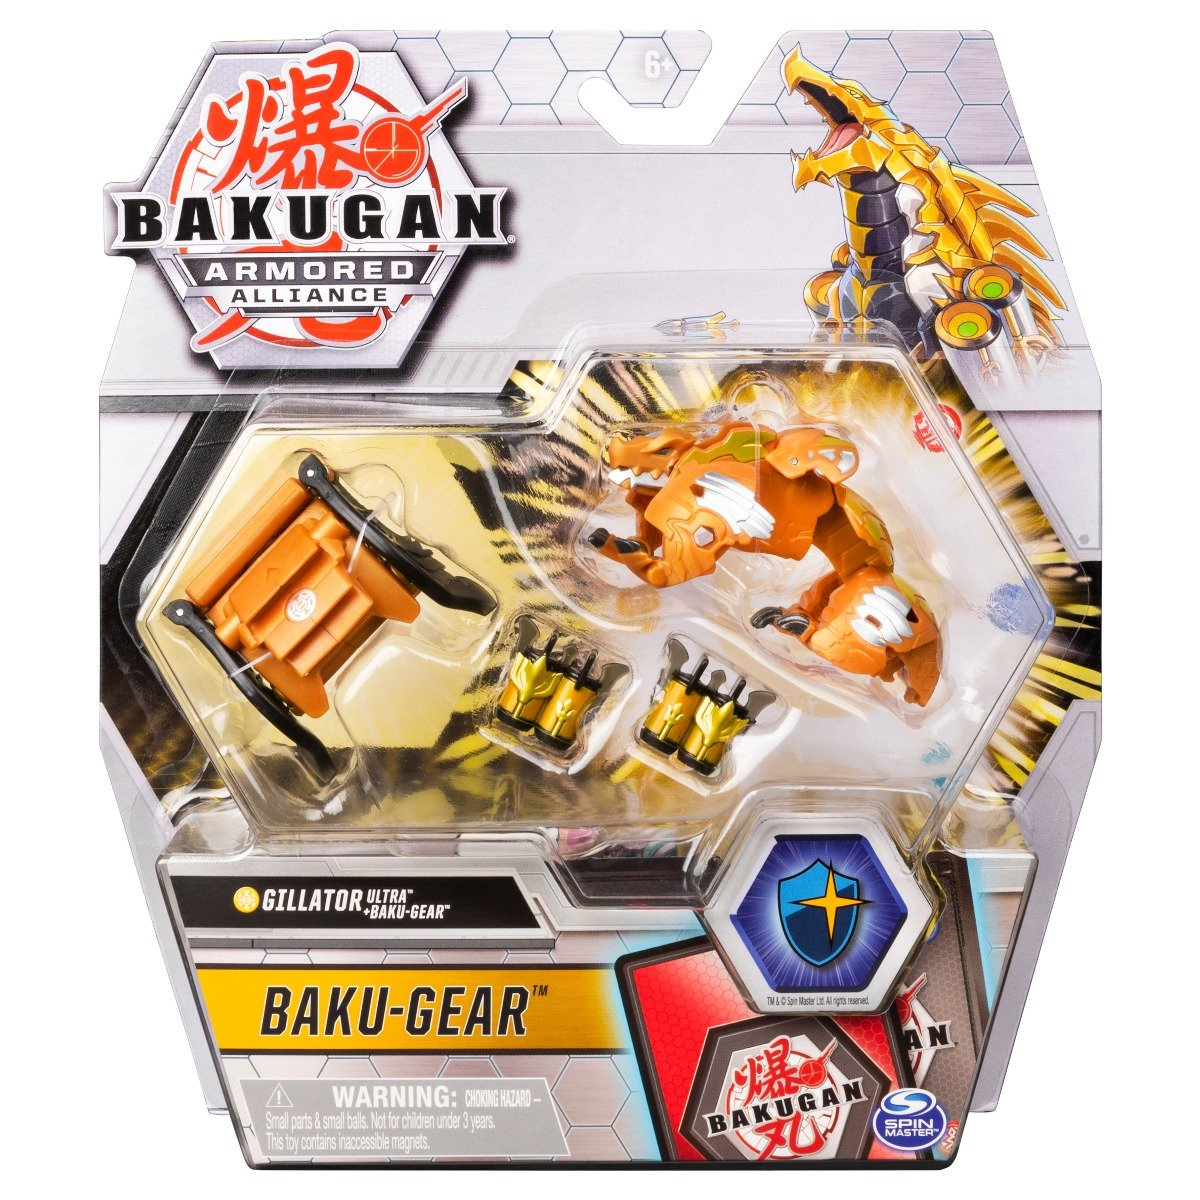 Figurina Bakugan Armored Alliance, Gillator Ultra, Baku-Gear 20124275